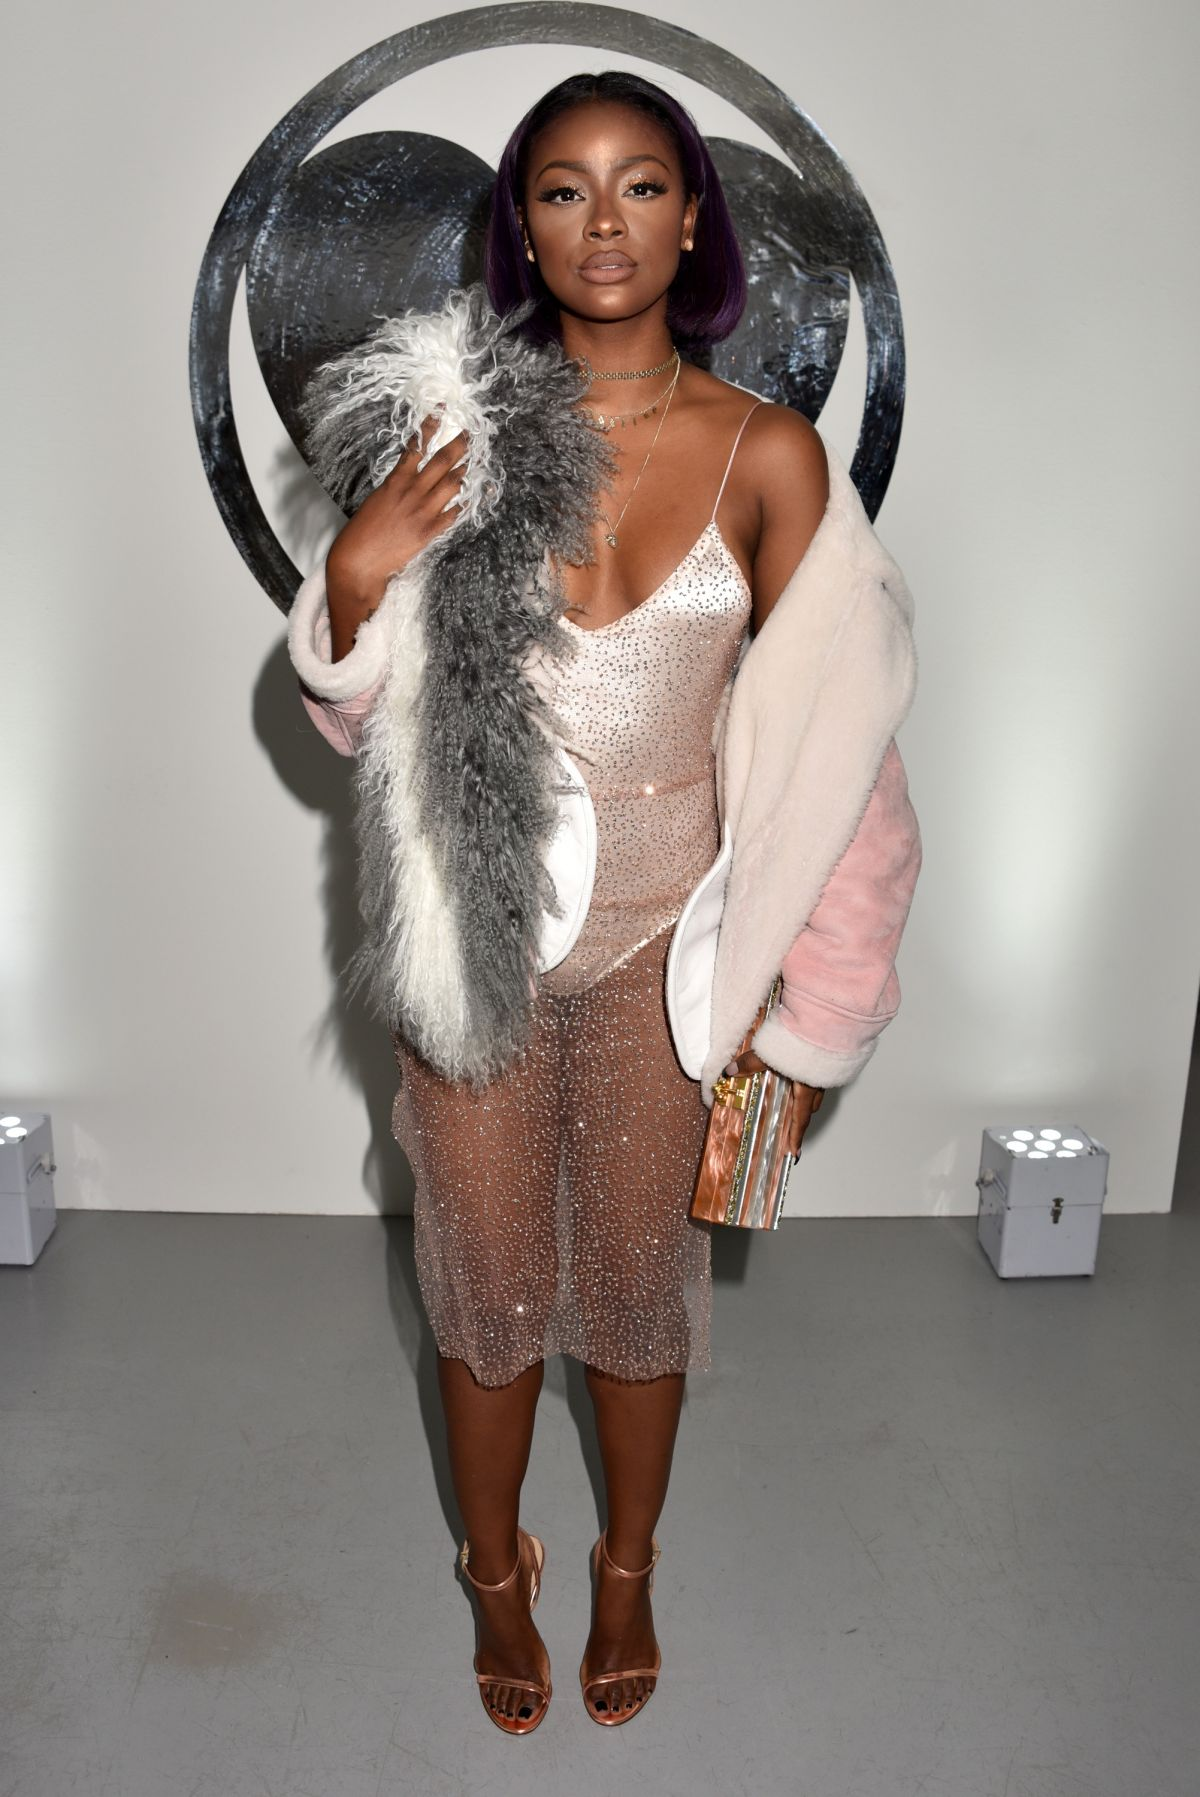 justine-skye-at-charlotte-simone-fashion-show-in-london-02-17-2017_2.jpg